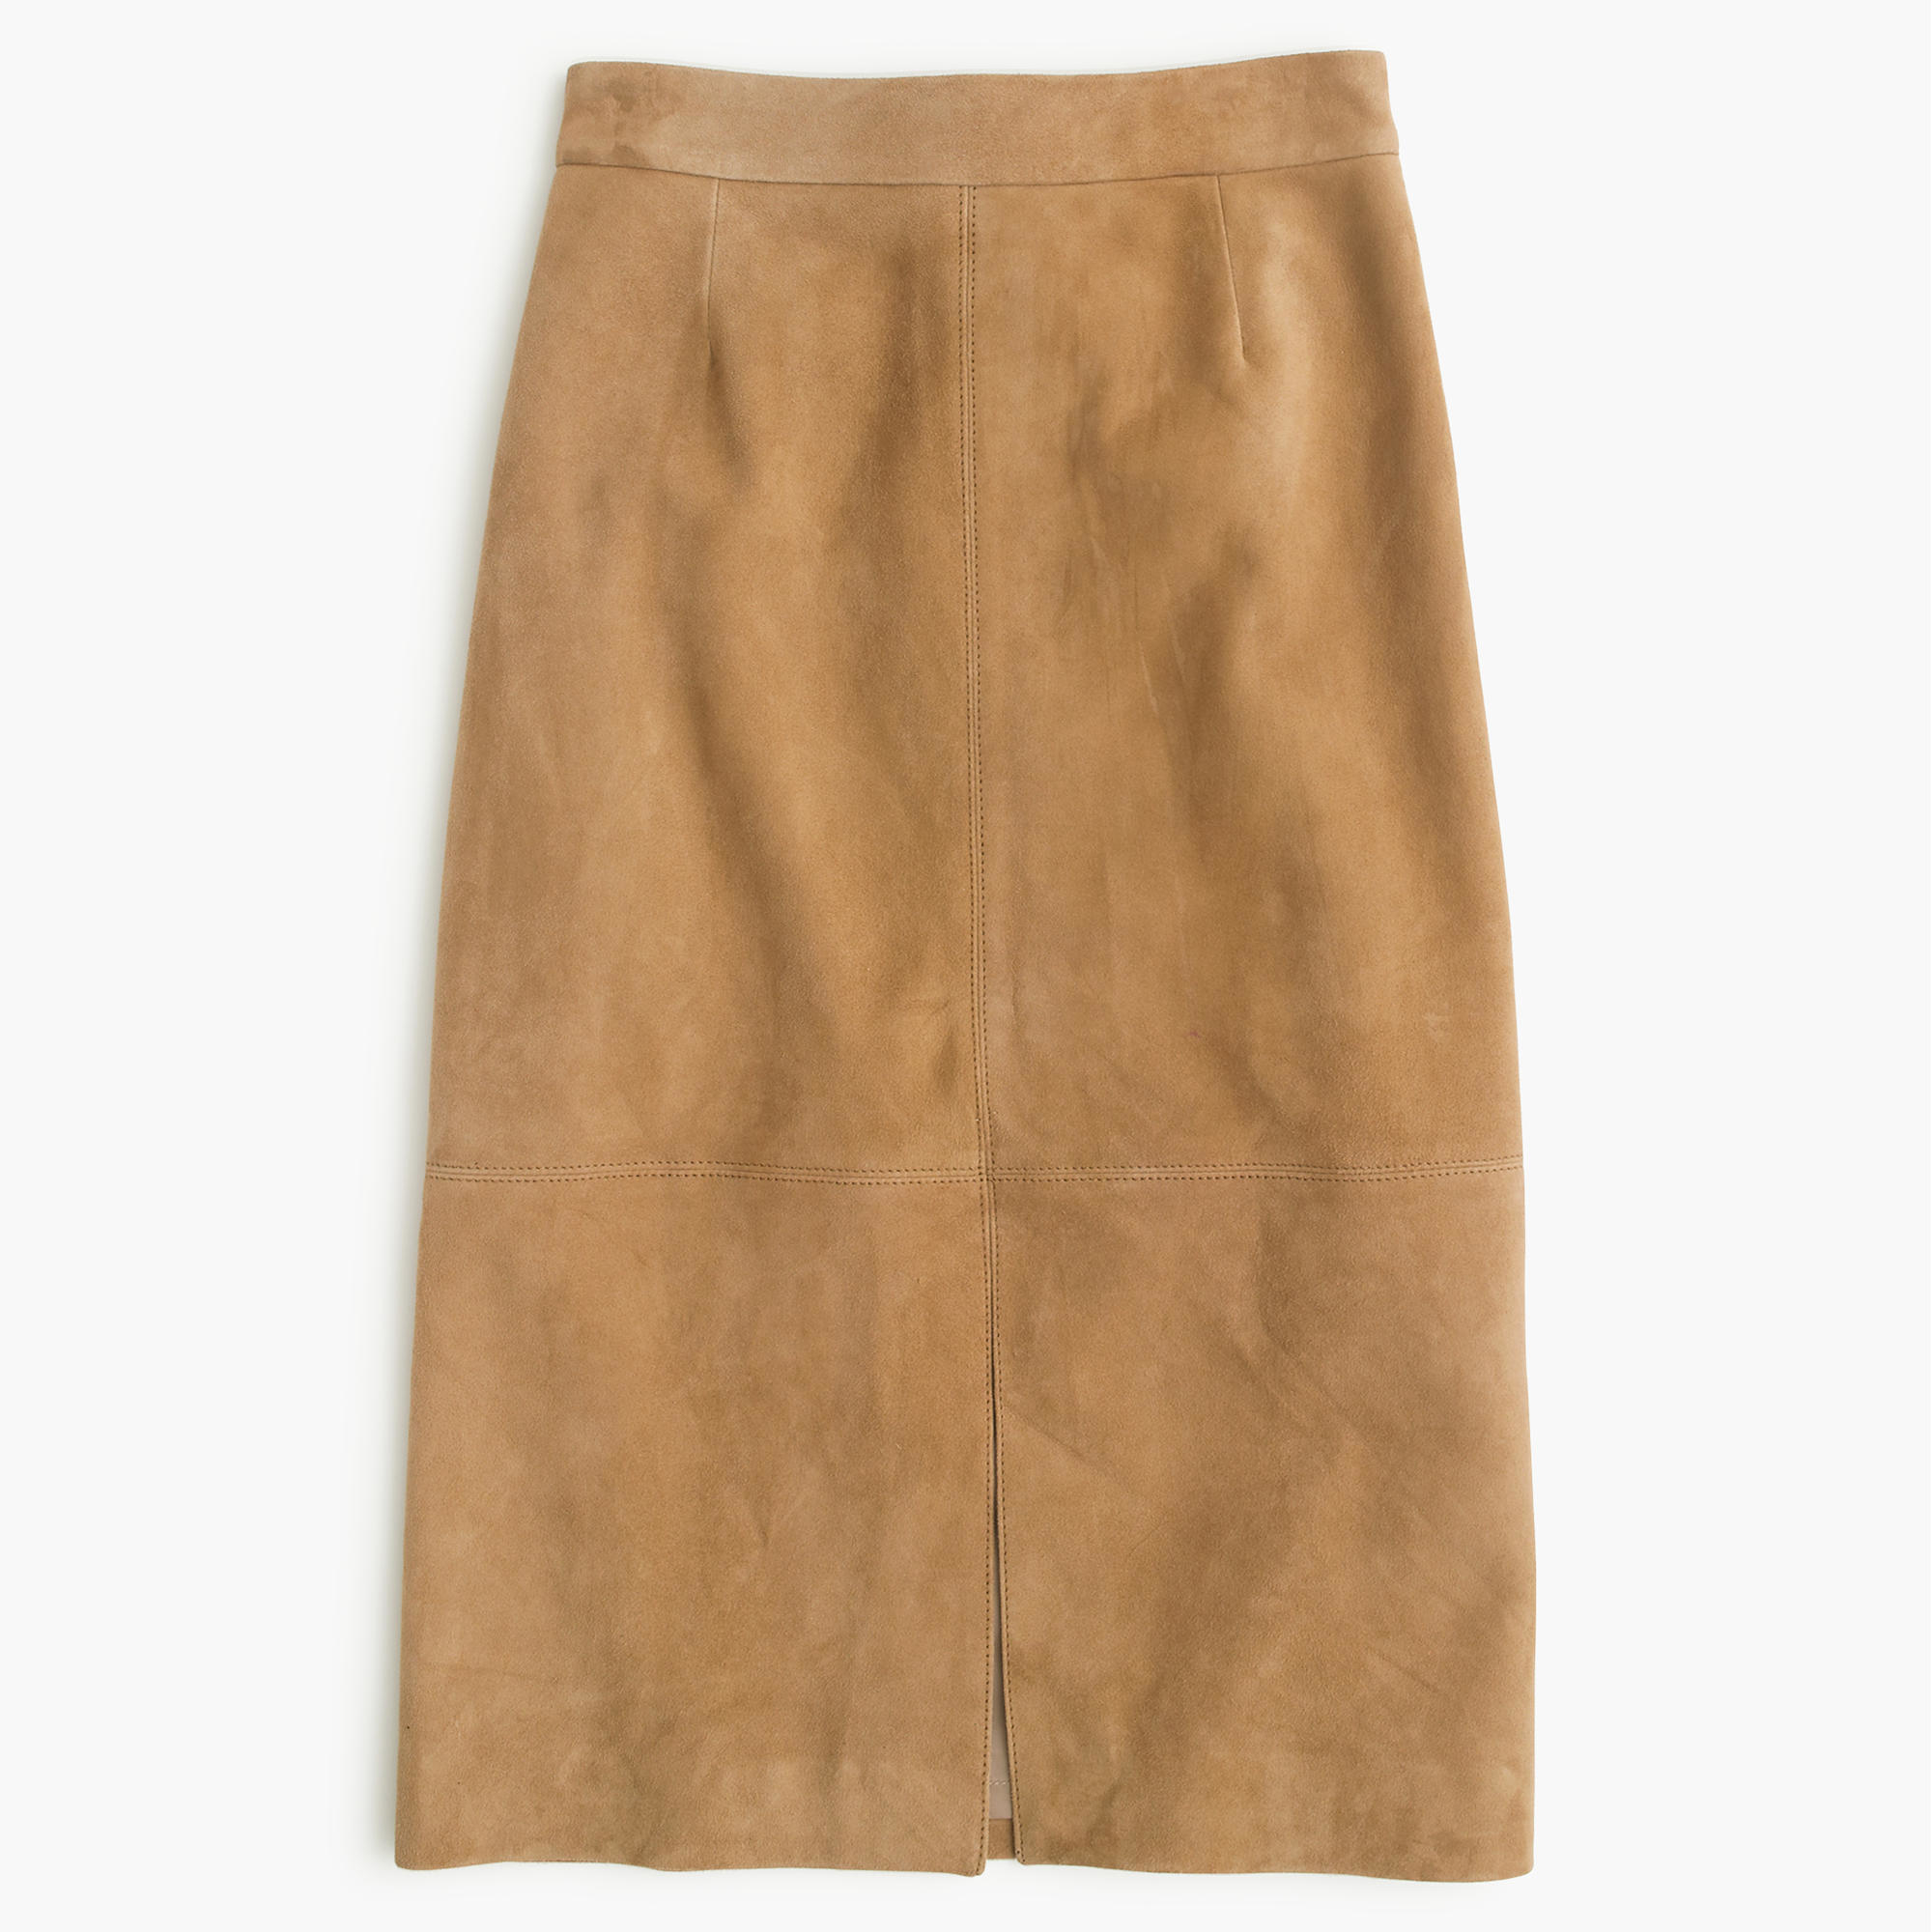 J.crew Collection A-line Midi Skirt In Suede in Natural | Lyst